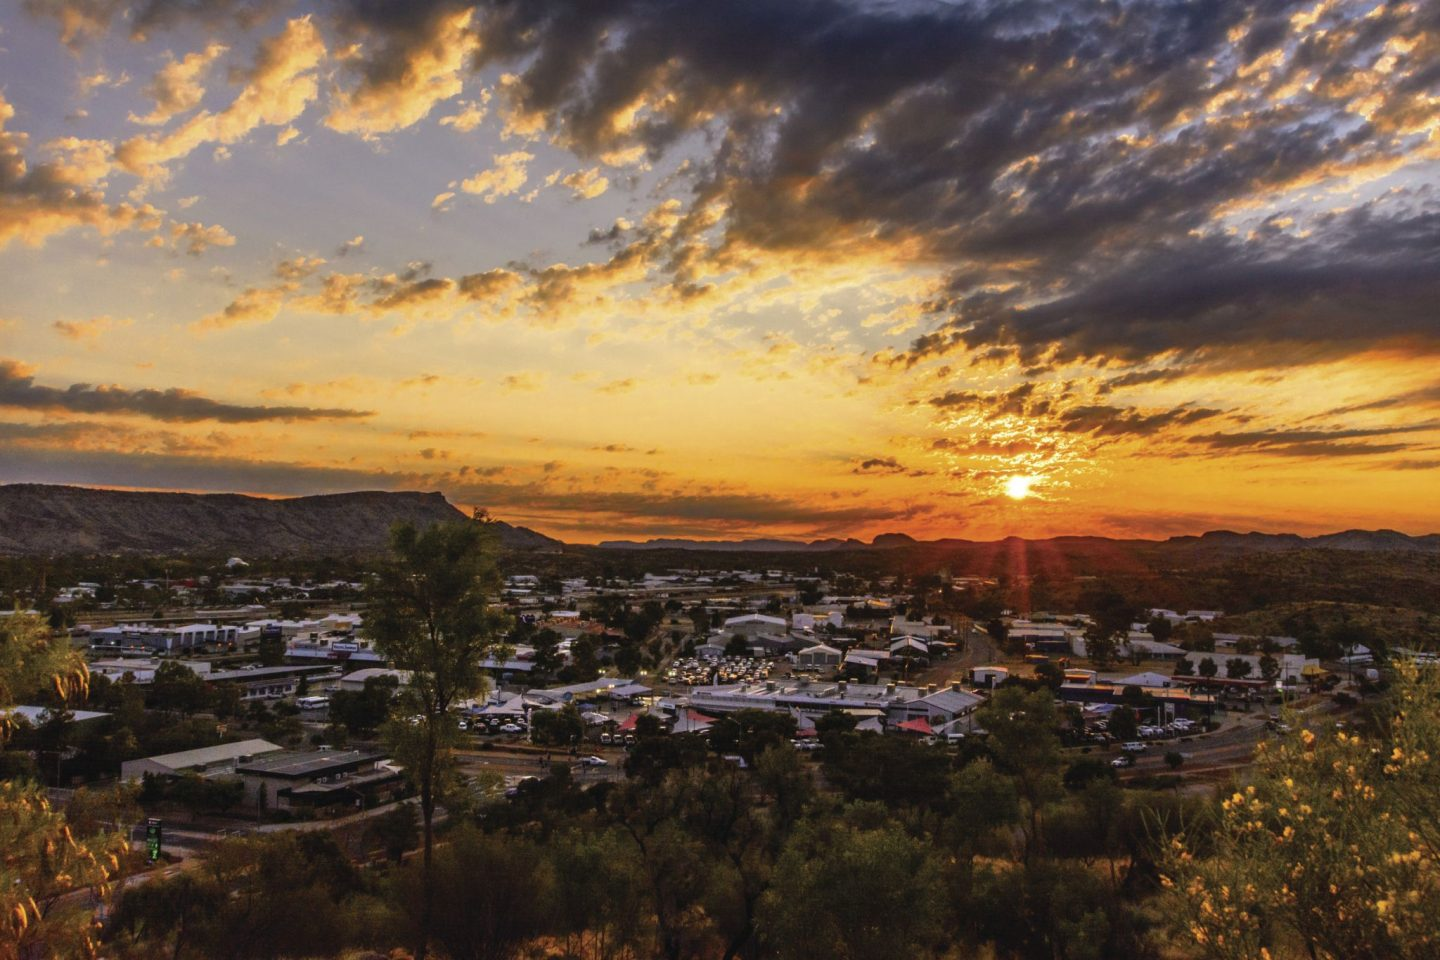 MAKING YOUR TRIP TO ALICE SPRINGS MEMORABLE